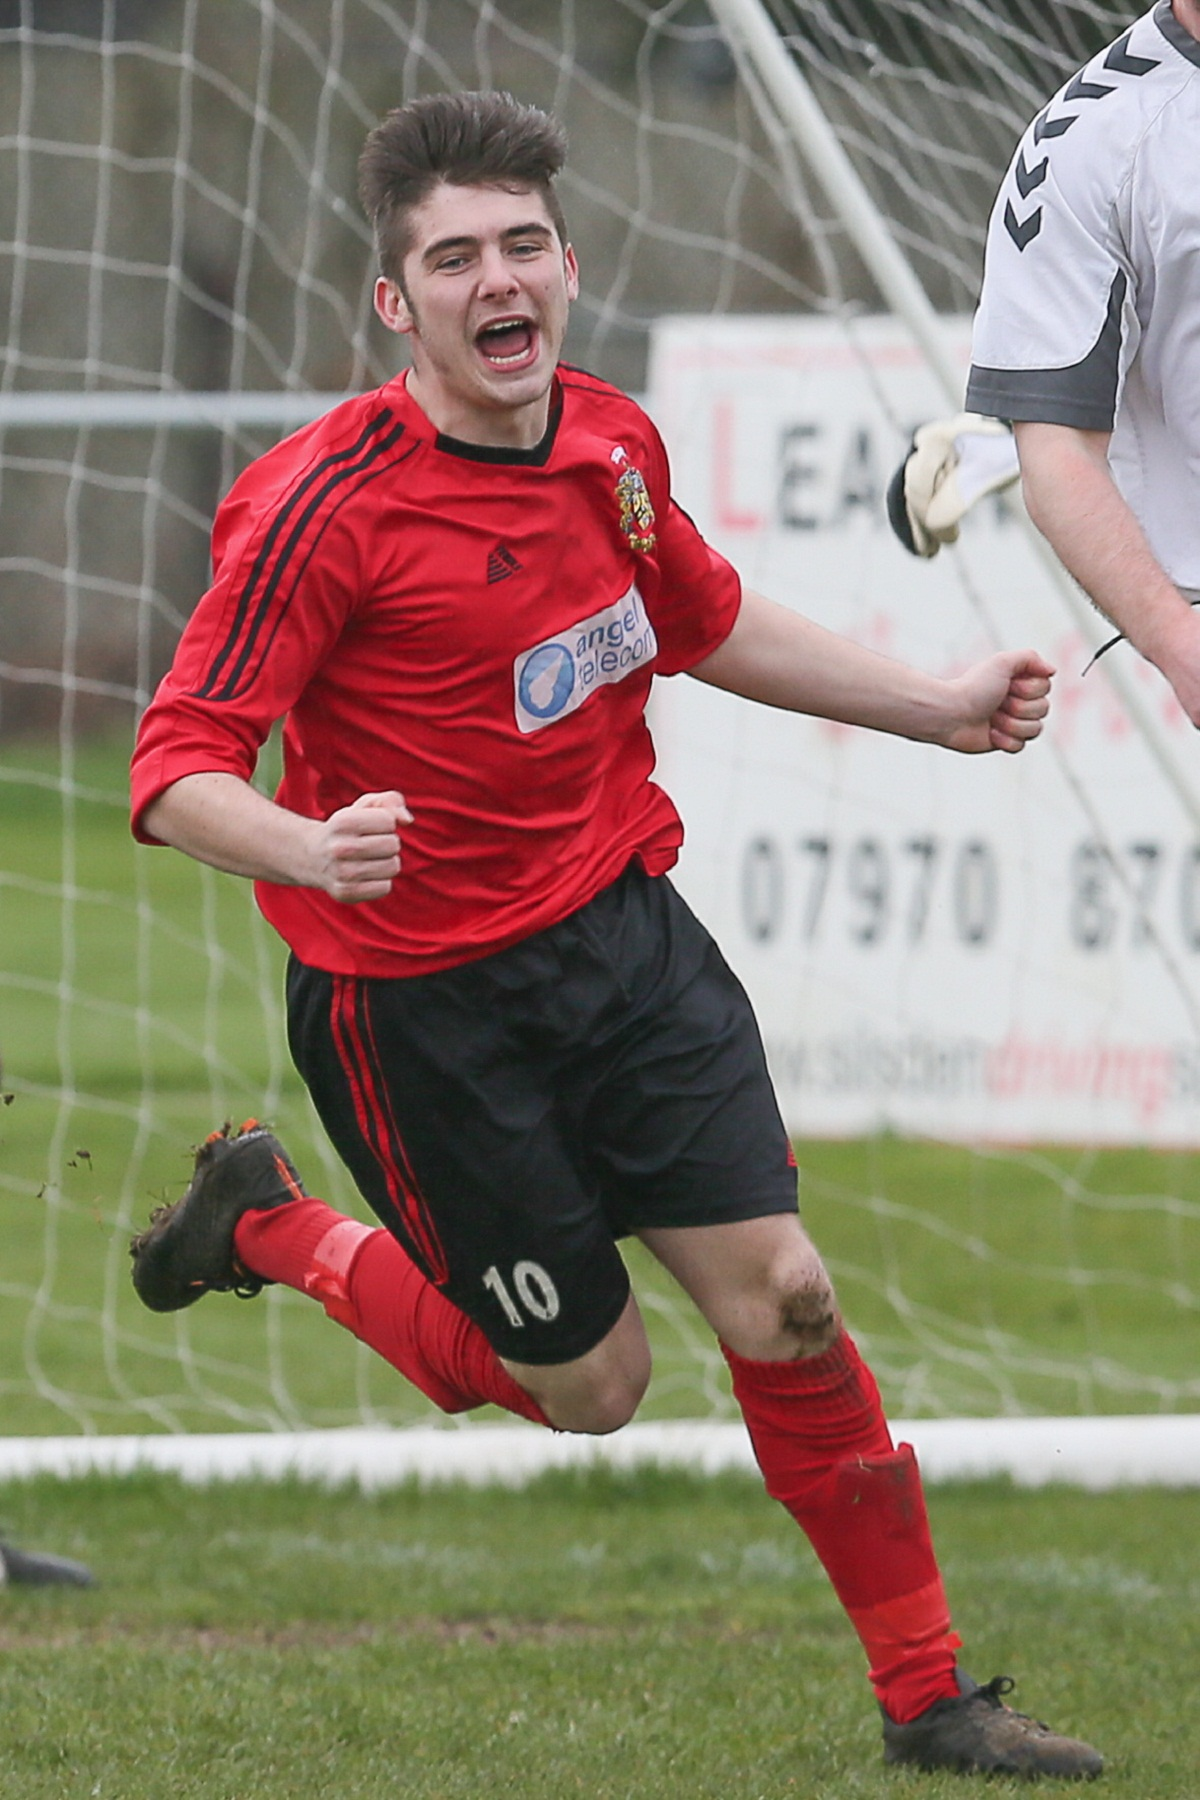 Dale doubles up to lift Silsden